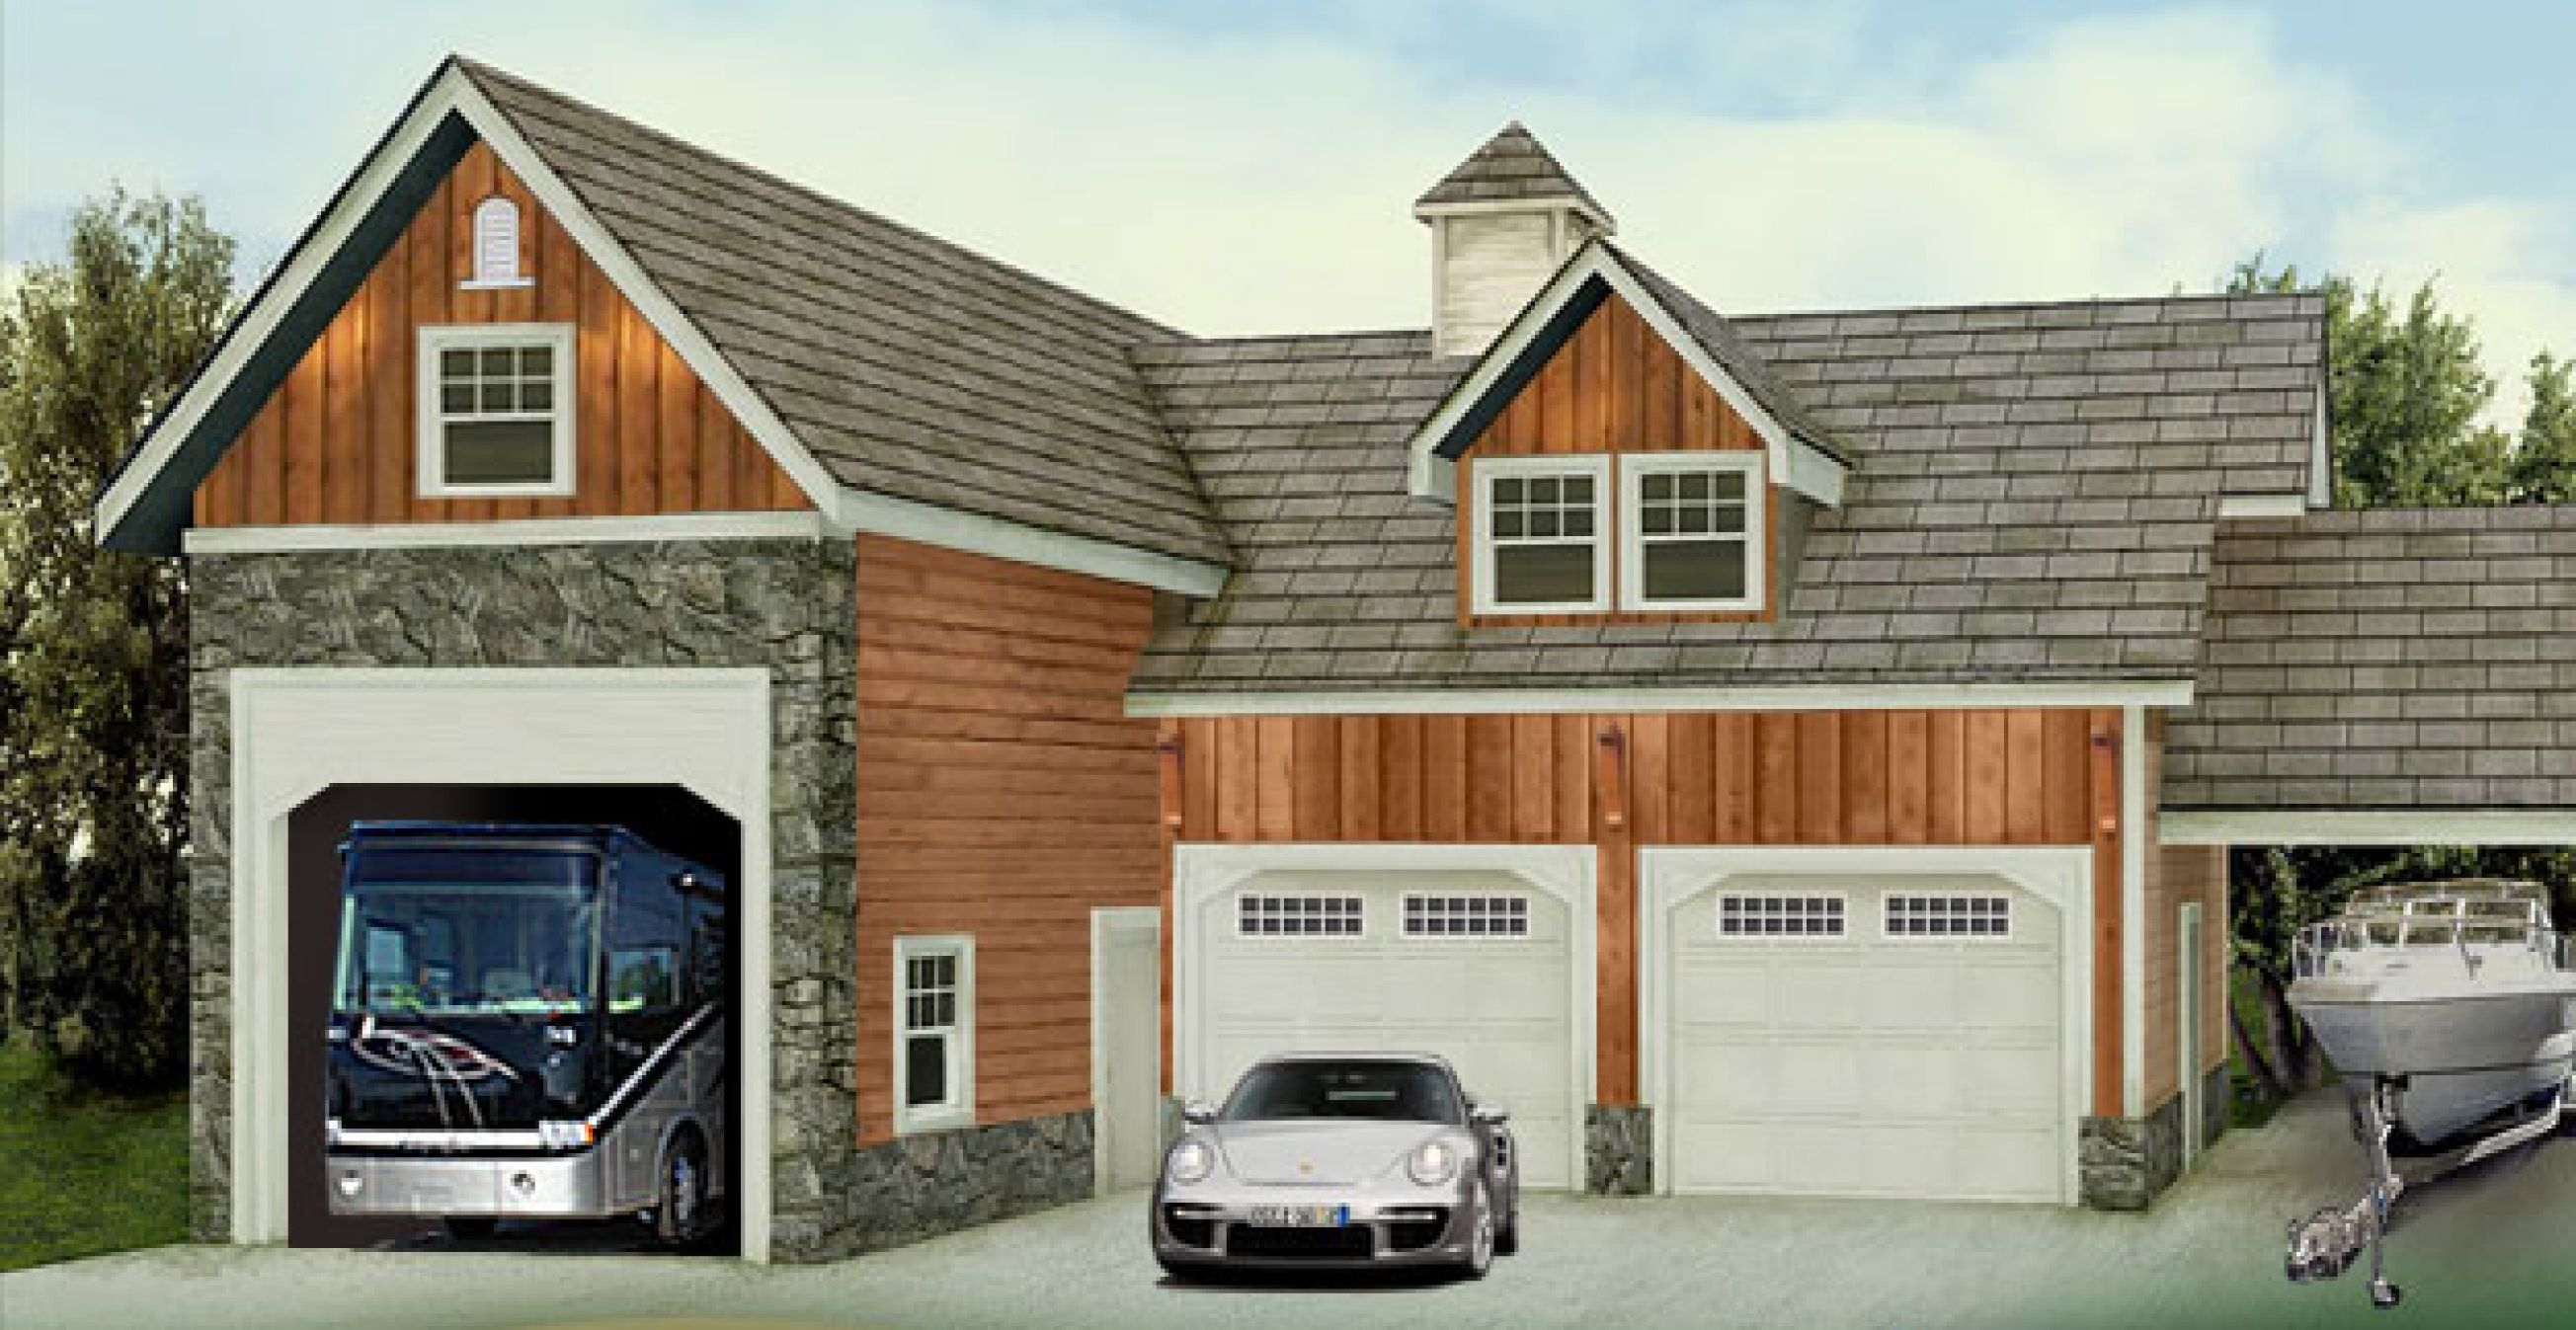 Rv garage i 39 d convert the two smaller garages into a for Rv garage plans with living space